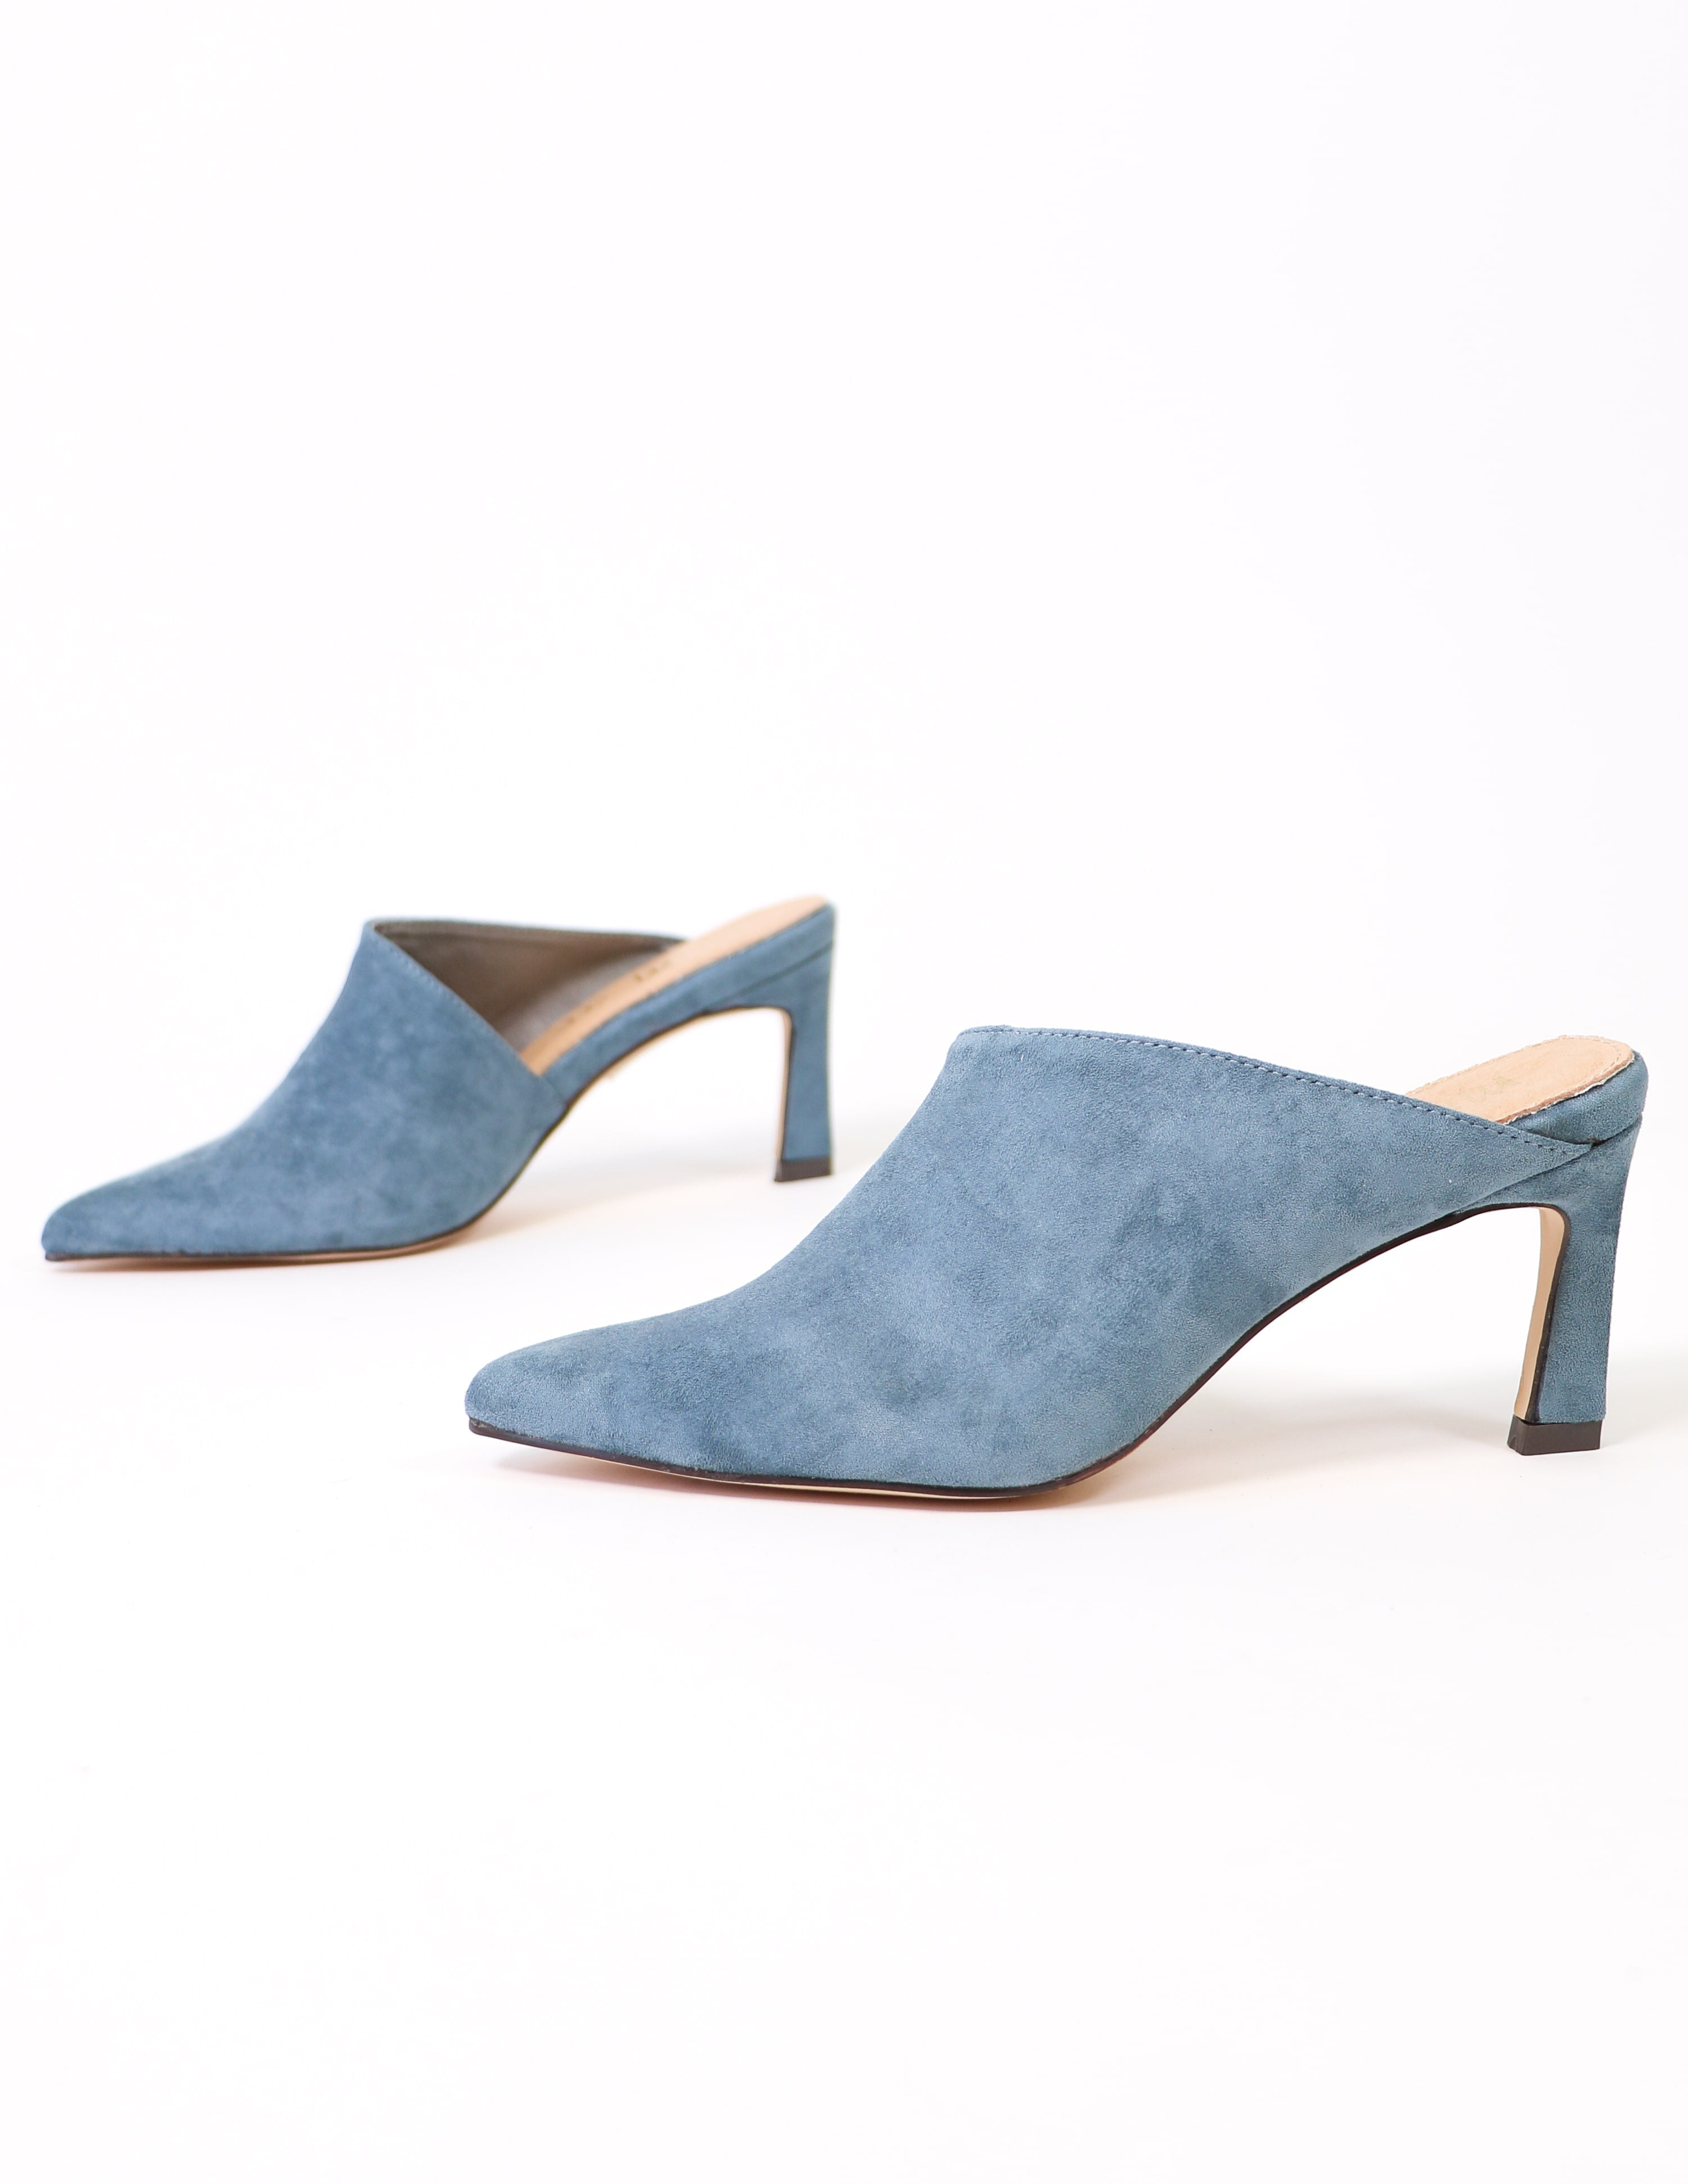 Side view of the blue suede kitten heel - elle bleu shoes